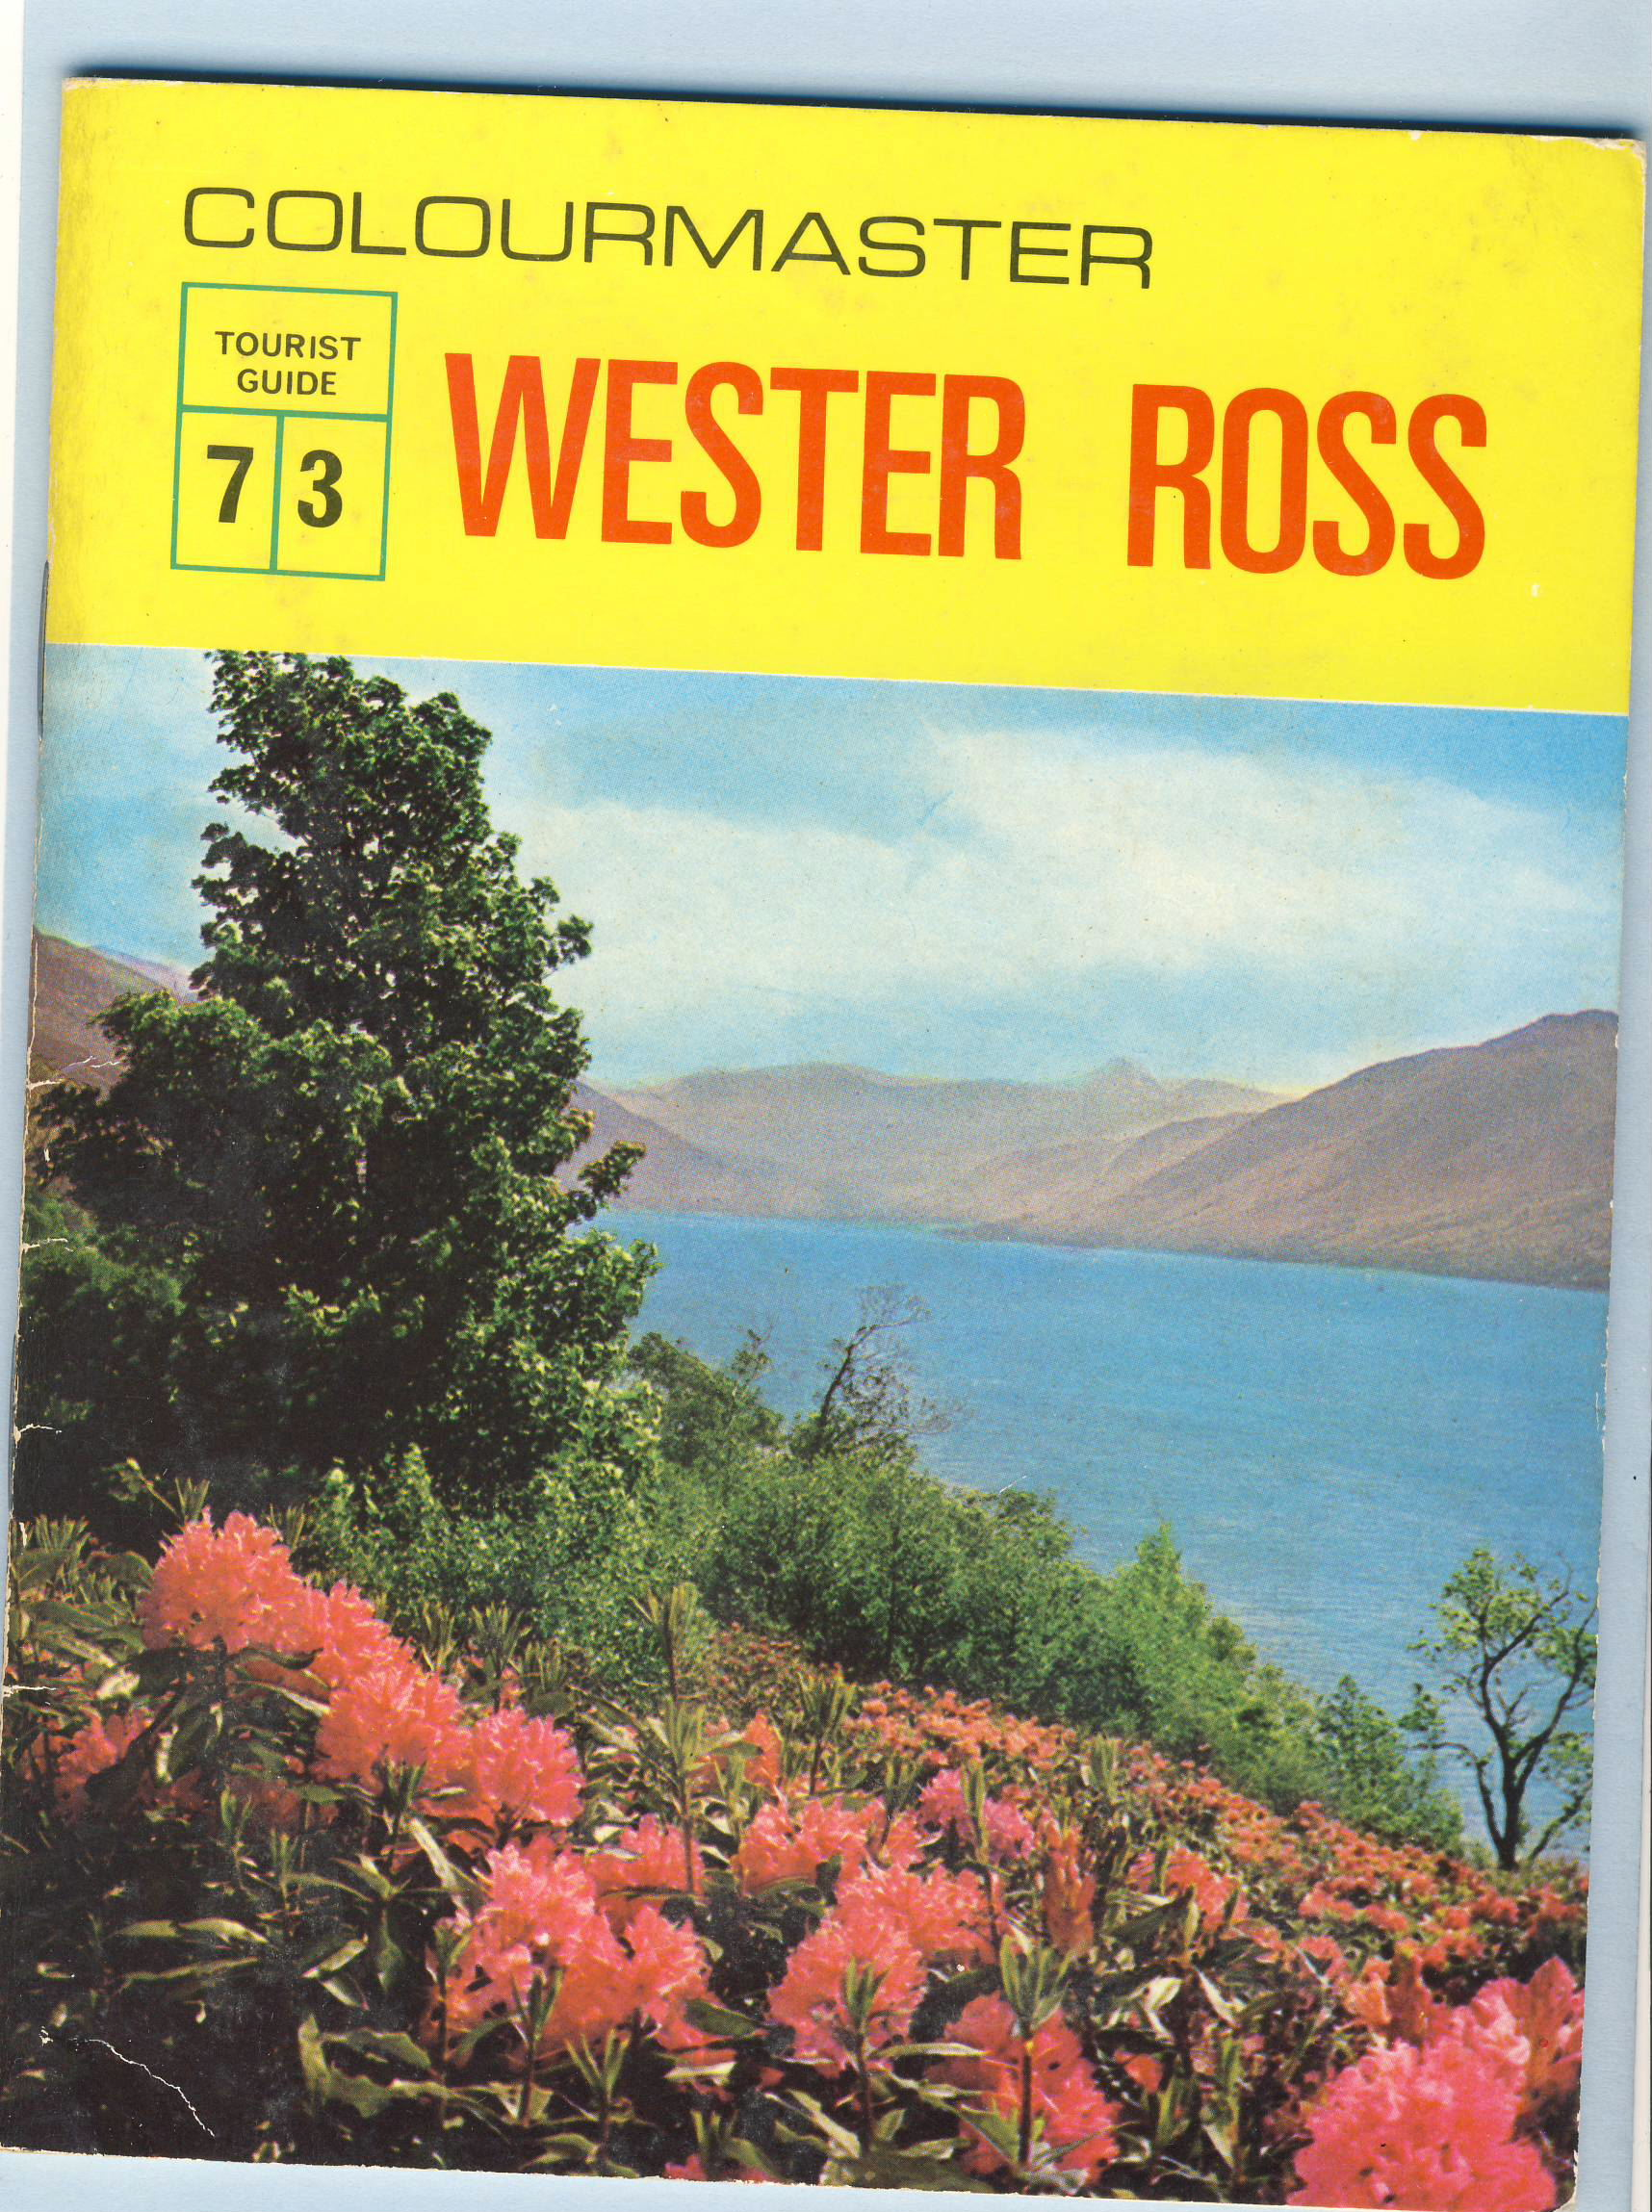 WESTER ROSS Colourmaster Tourist Guide 7 / 3 refS5 a pre-owned vintage item in good condition.  32 pages booklet measures 18cm x 14cm approx